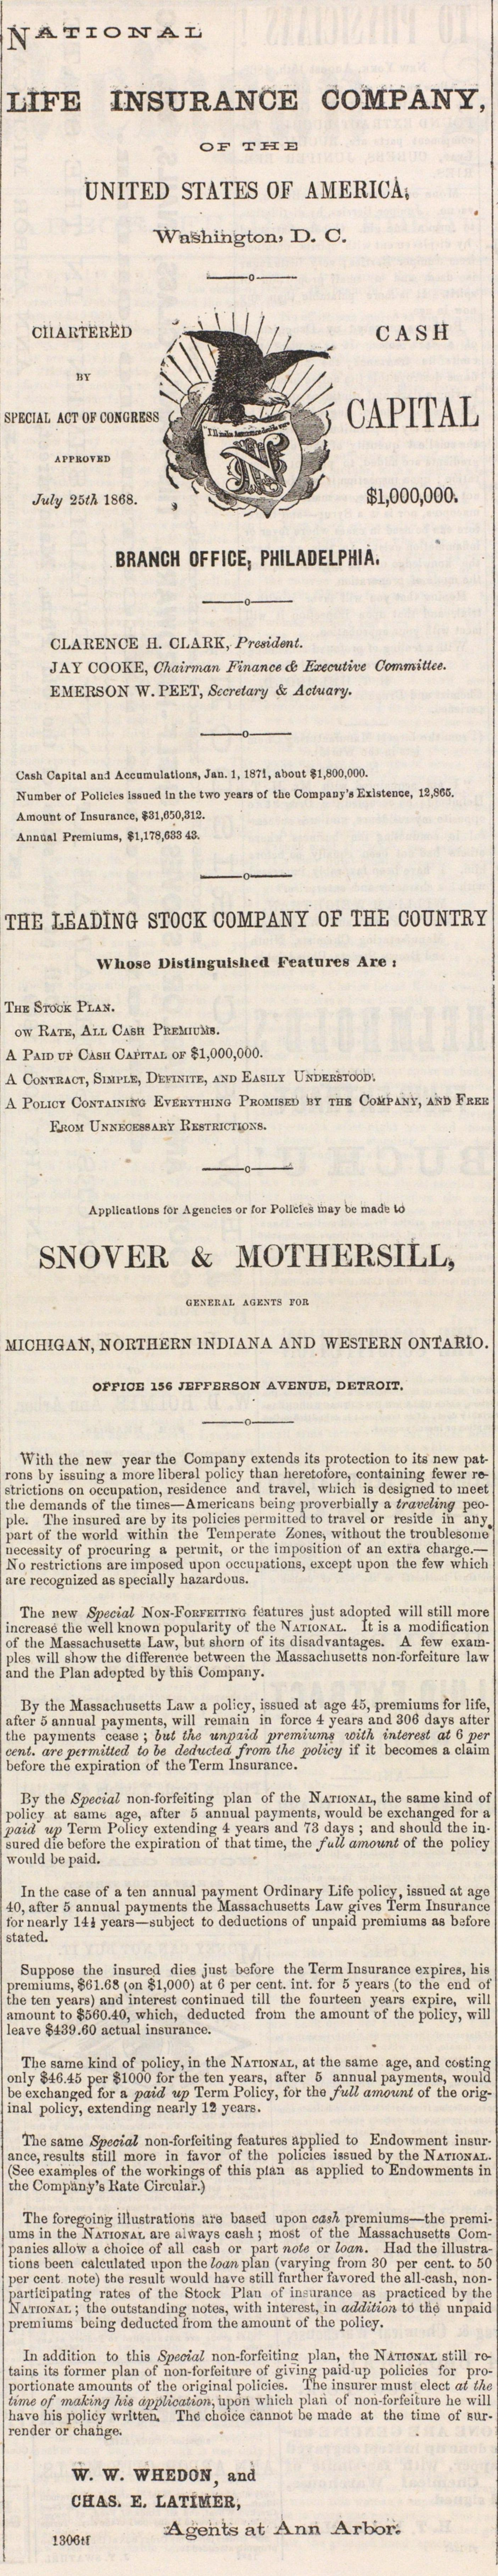 Snover & Mothersill image